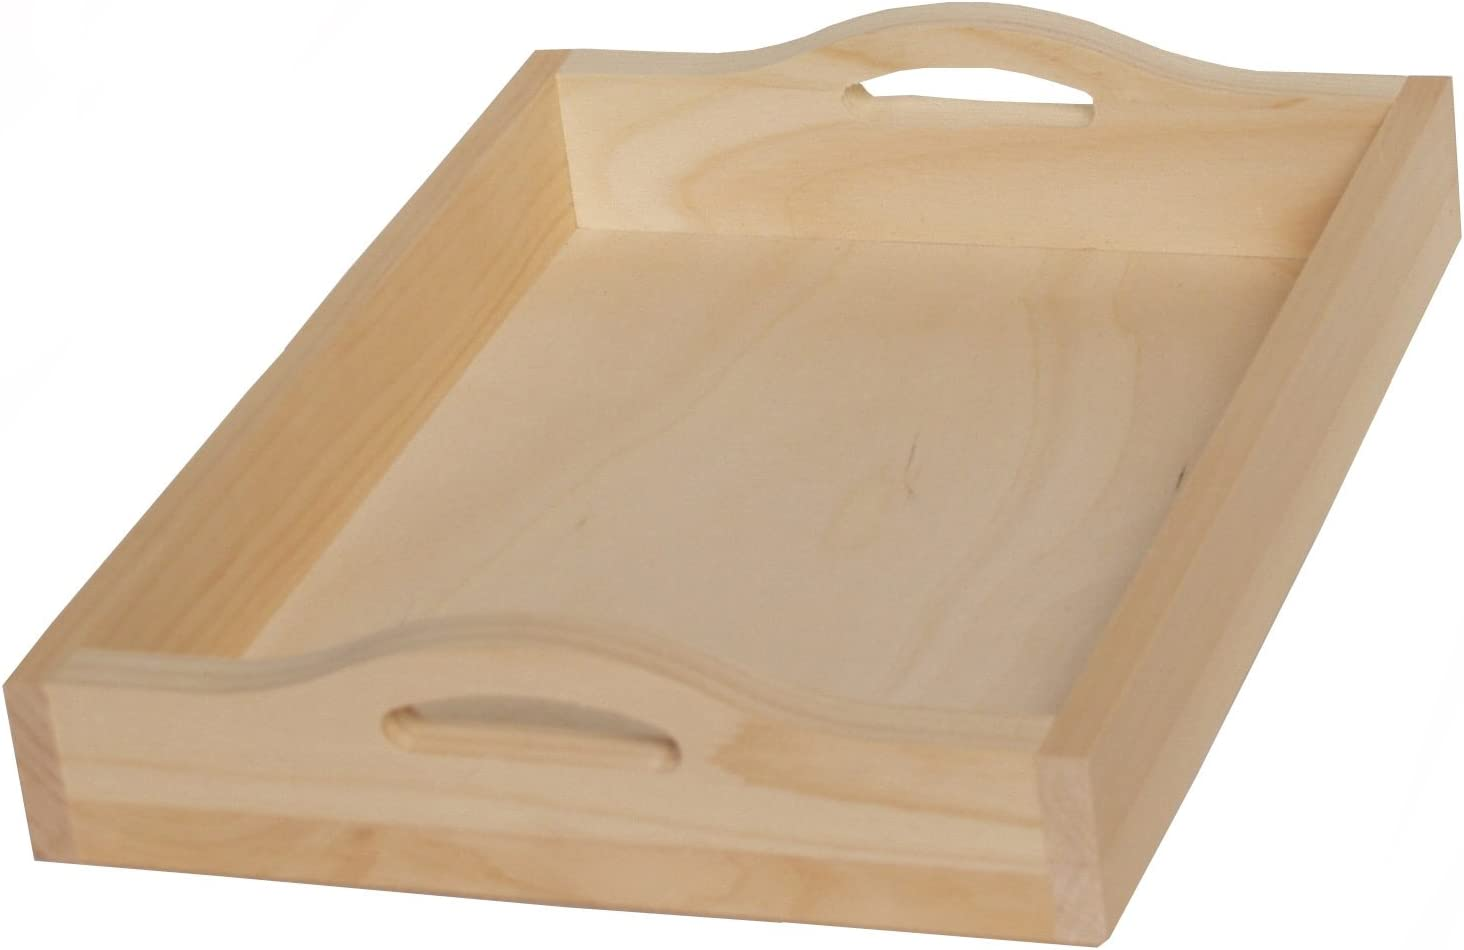 Walnut Hollow Unfinished Pine Serving Board for Arts /& Crafts Display Rectangle